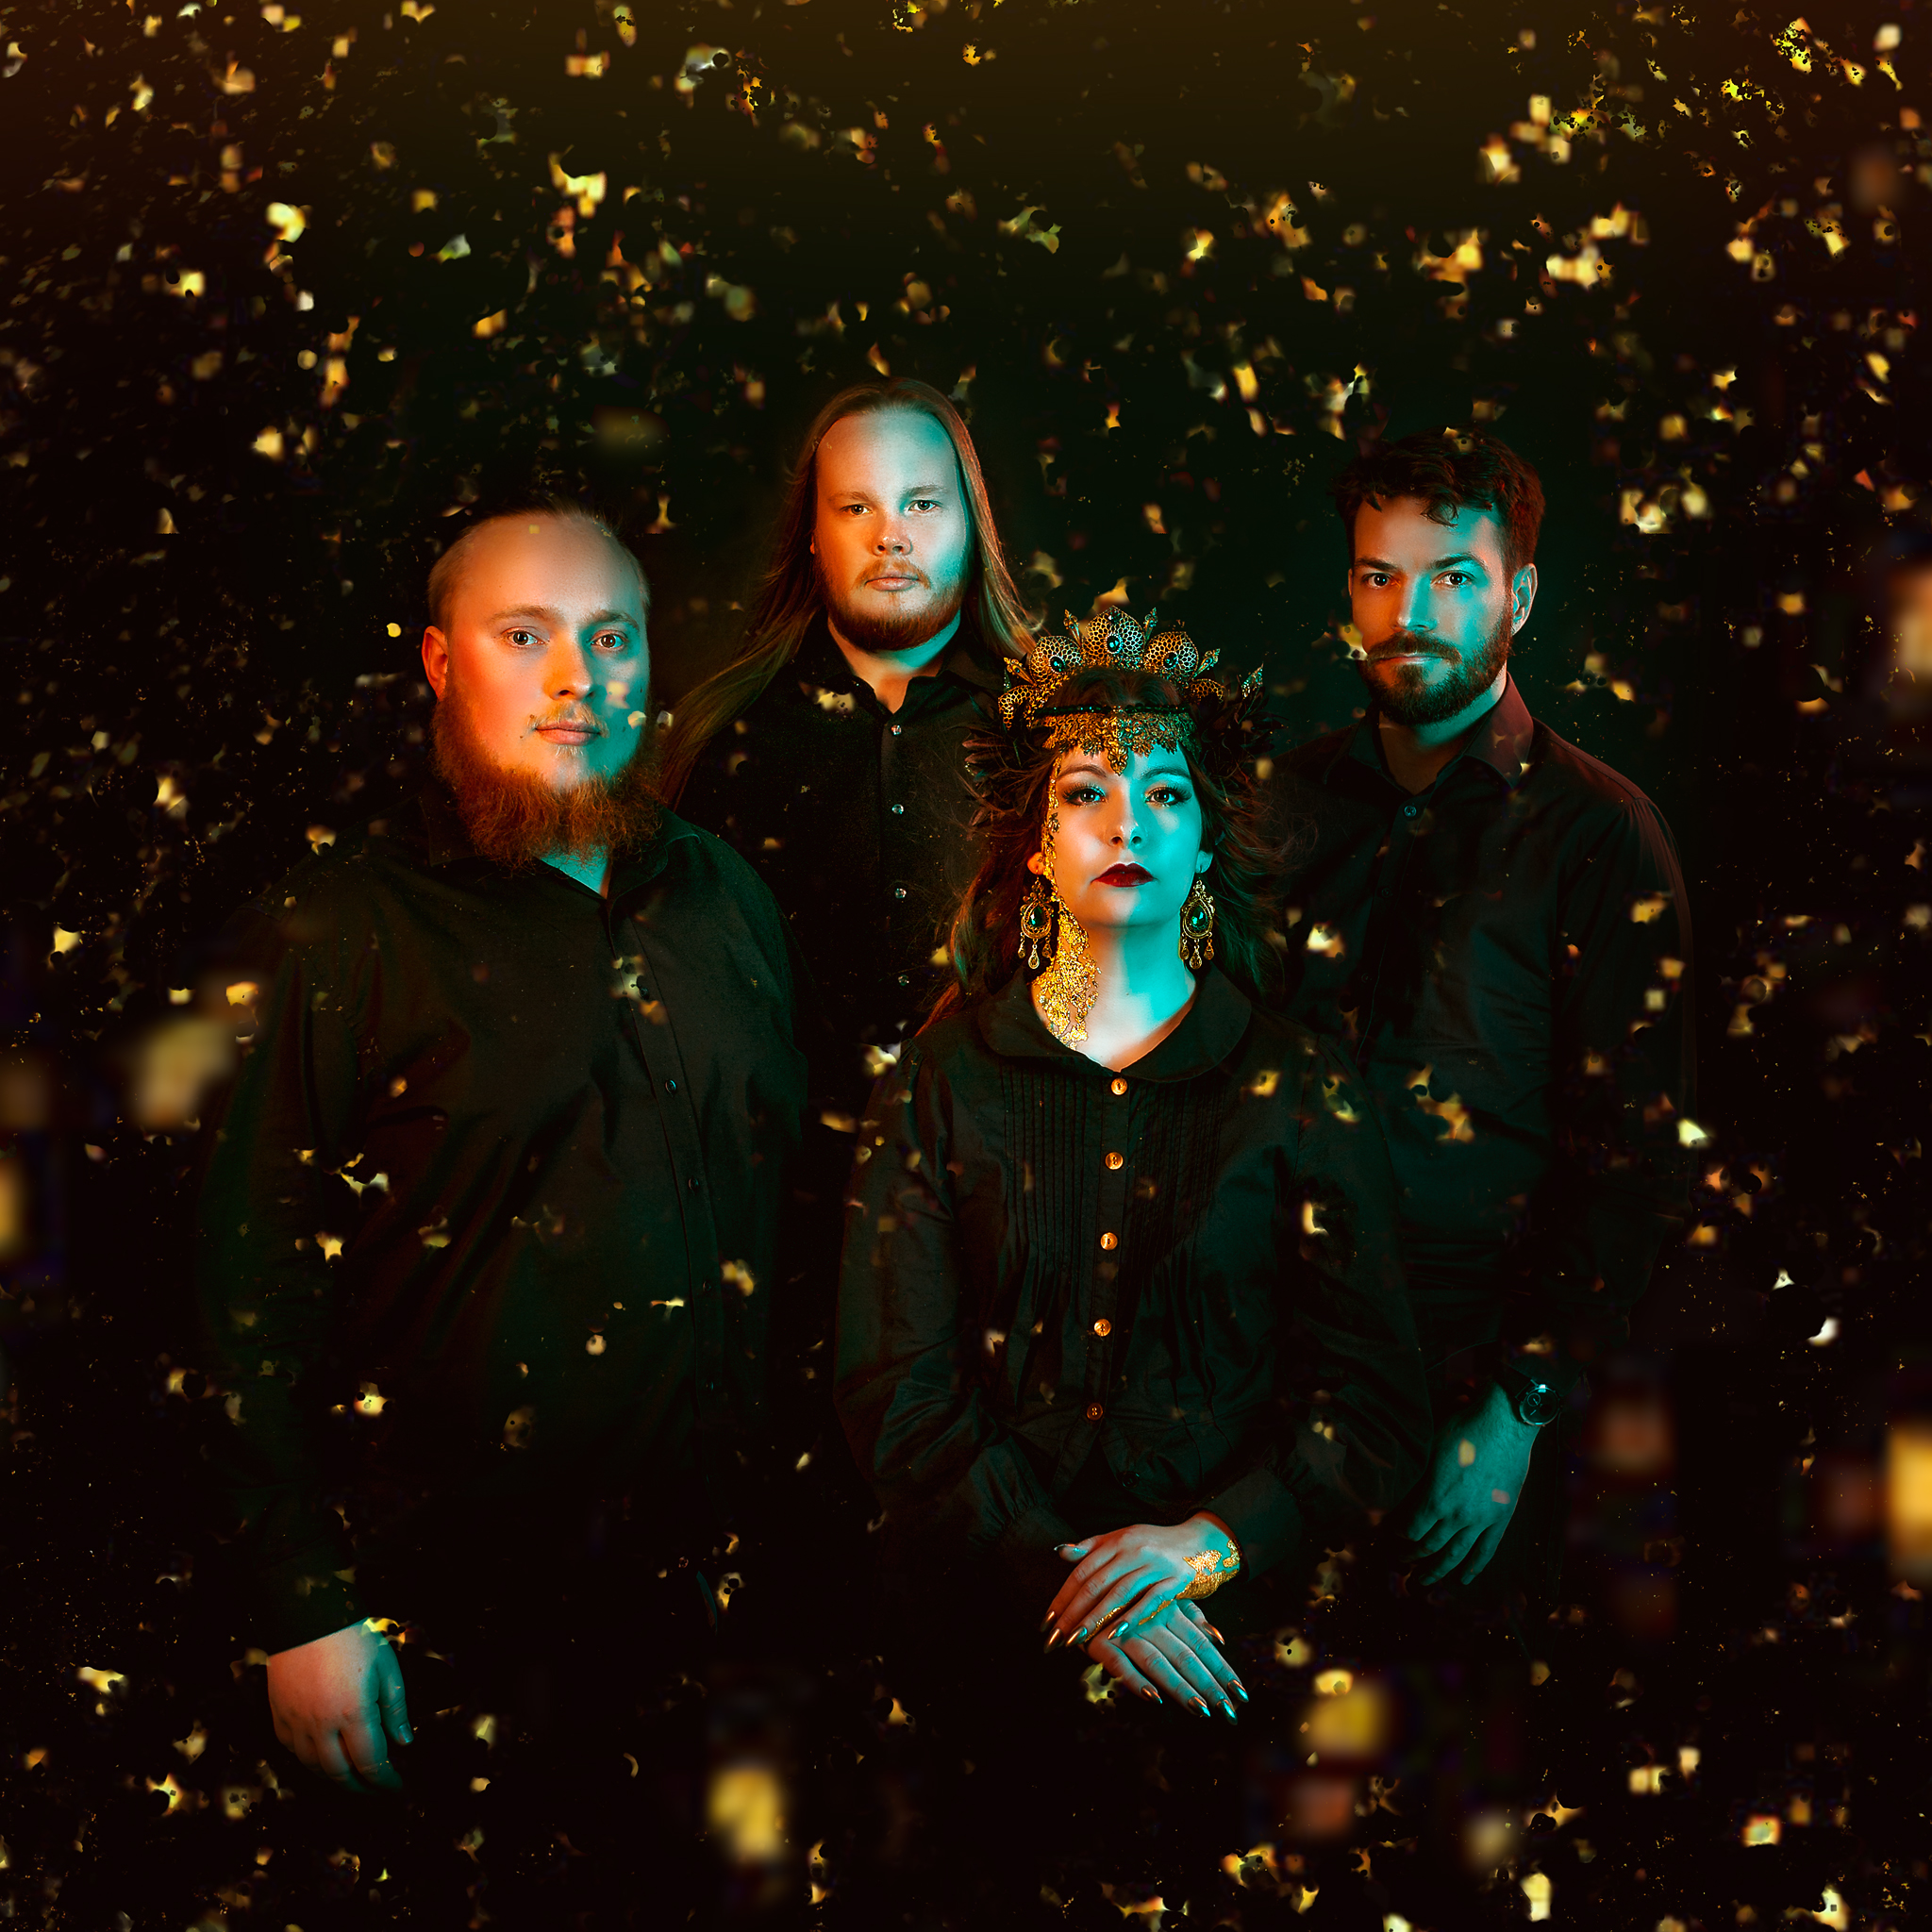 Ethereal Kingdoms band picture 2019 by Mathilde Maria Rønshof